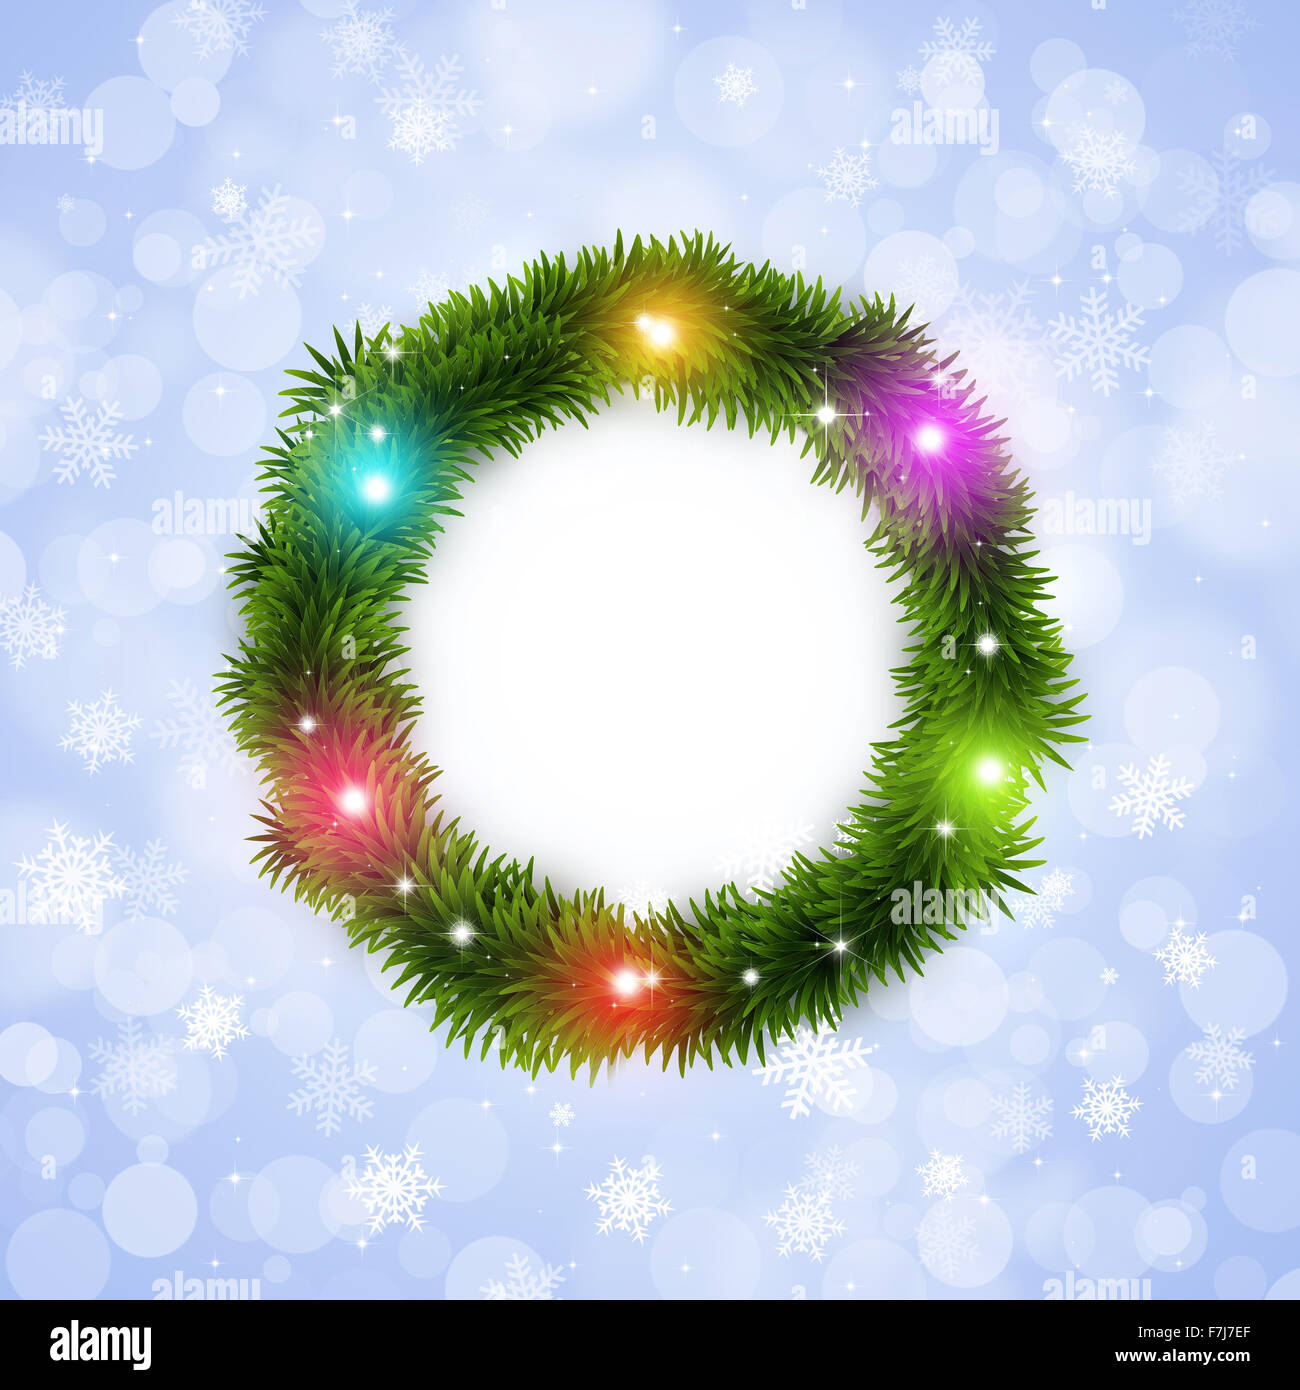 winter holiday christmas tree ring white background with multicolor ...